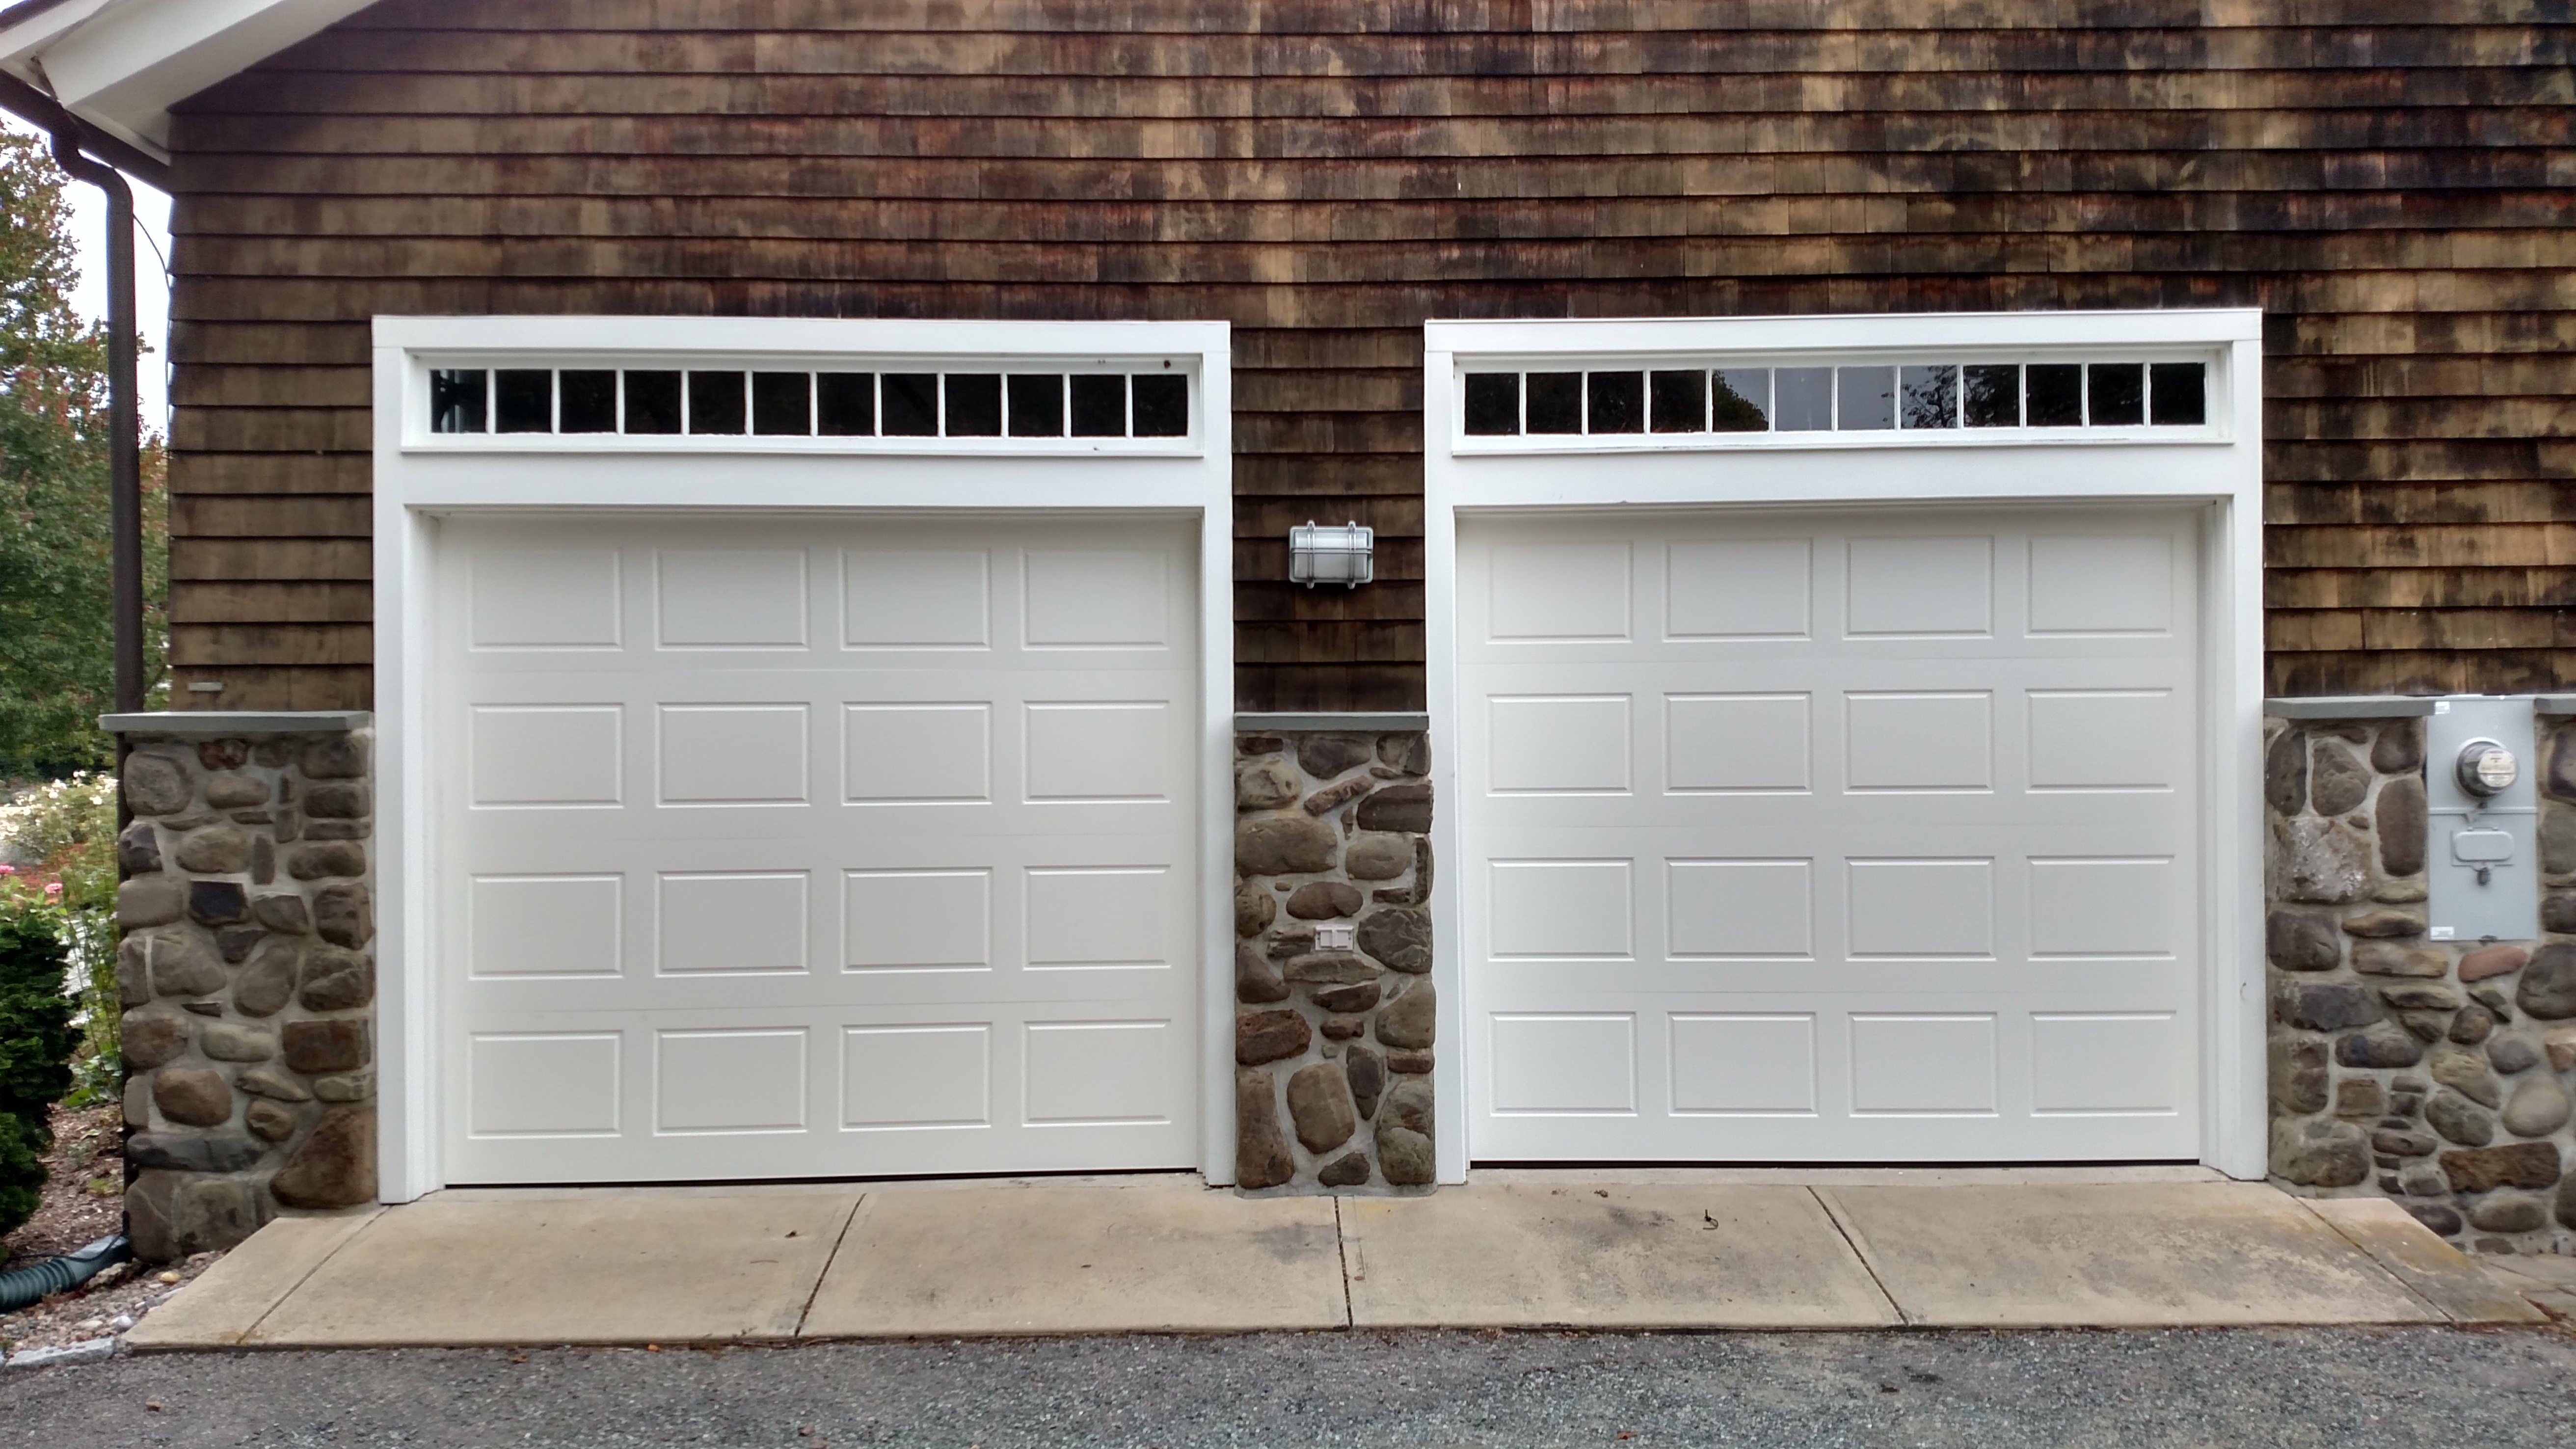 Door works green village new jersey nj for Fimbel garage door prices